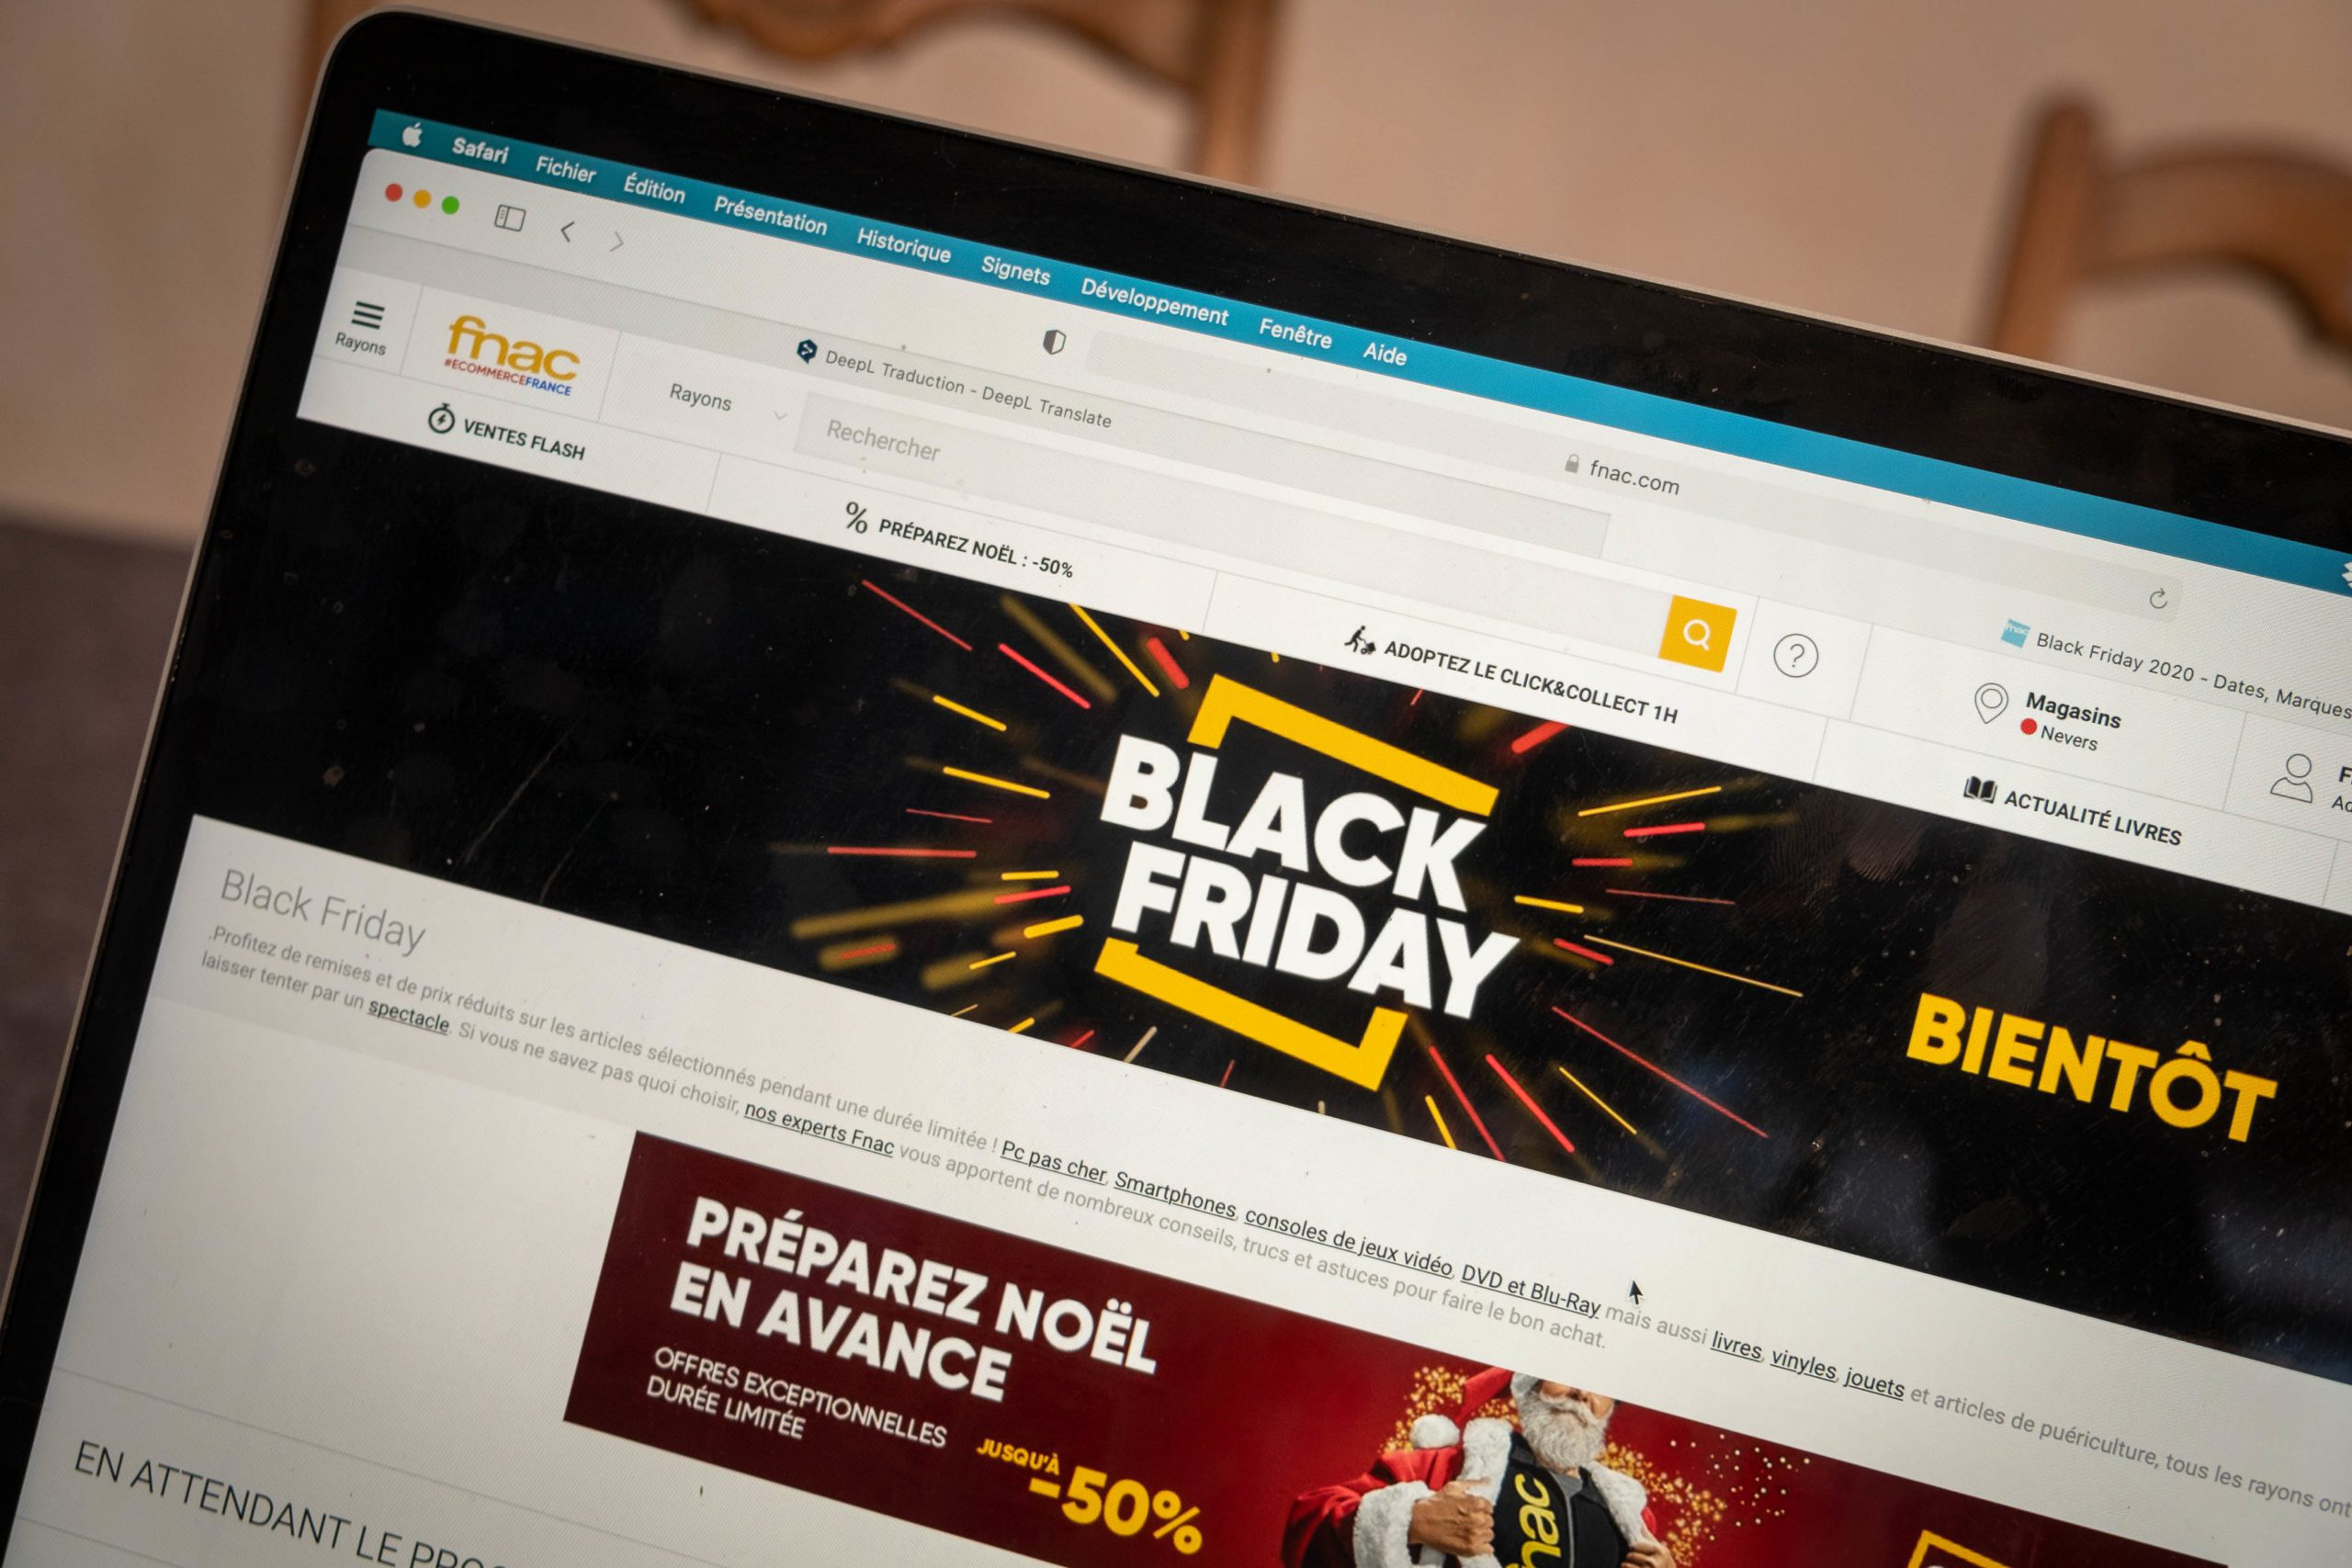 The holding of Black Friday in France in 2020 is debated. The giant Amazon has already announced a postponement at the beginning of December. 22 November 2020, Florian Jannot-Caeilleté / APJ / Hans Lucas. La tenue du Black Friday en France en 2020 fait debat. Le geant Amazon a deja annonce un report début décembre. 22 novembre 2020, Florian Jannot-Caeilleté / APJ / Hans Lucas.